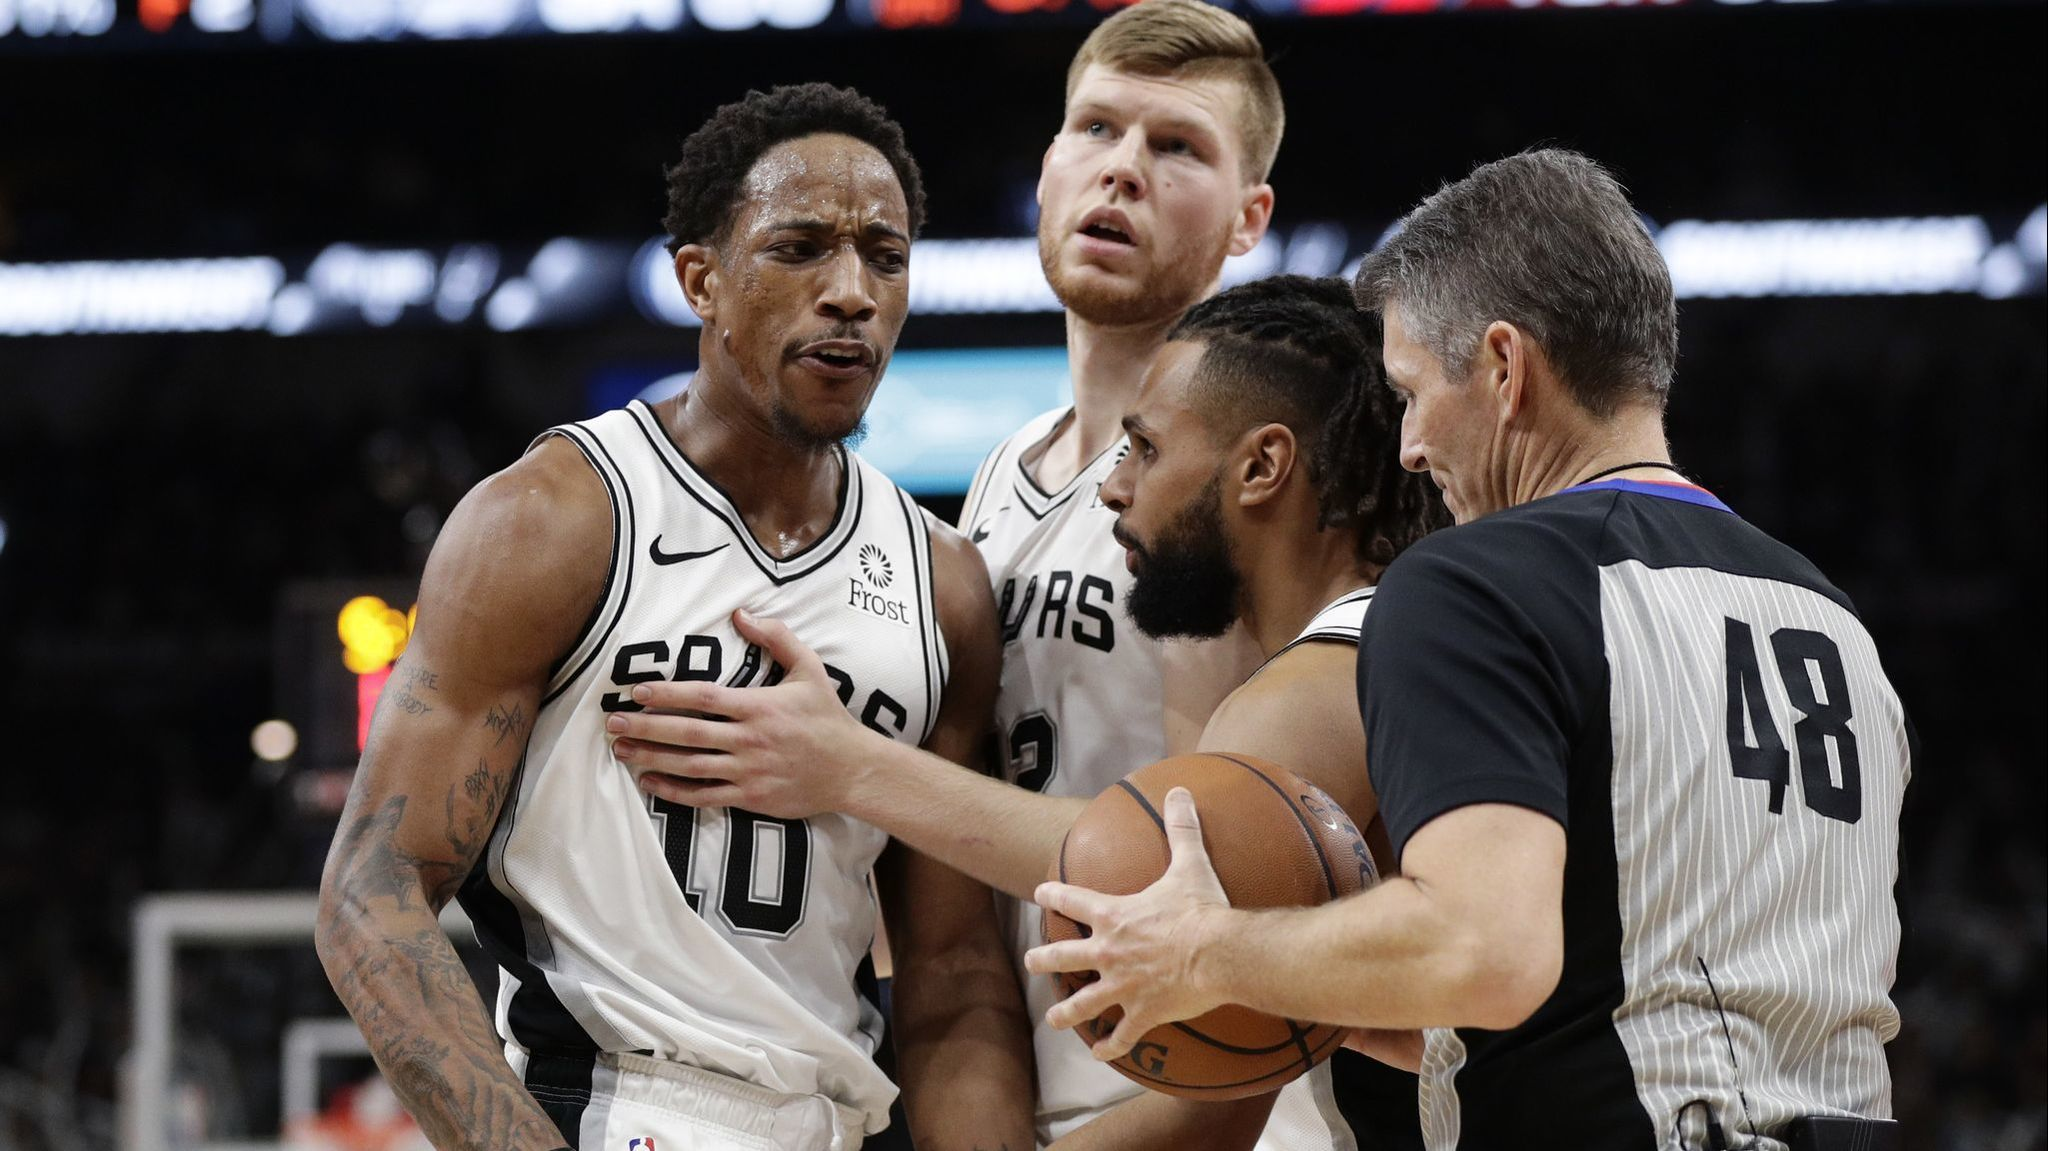 NBA Fastbreak: Bad news when a referee becomes the story of the week